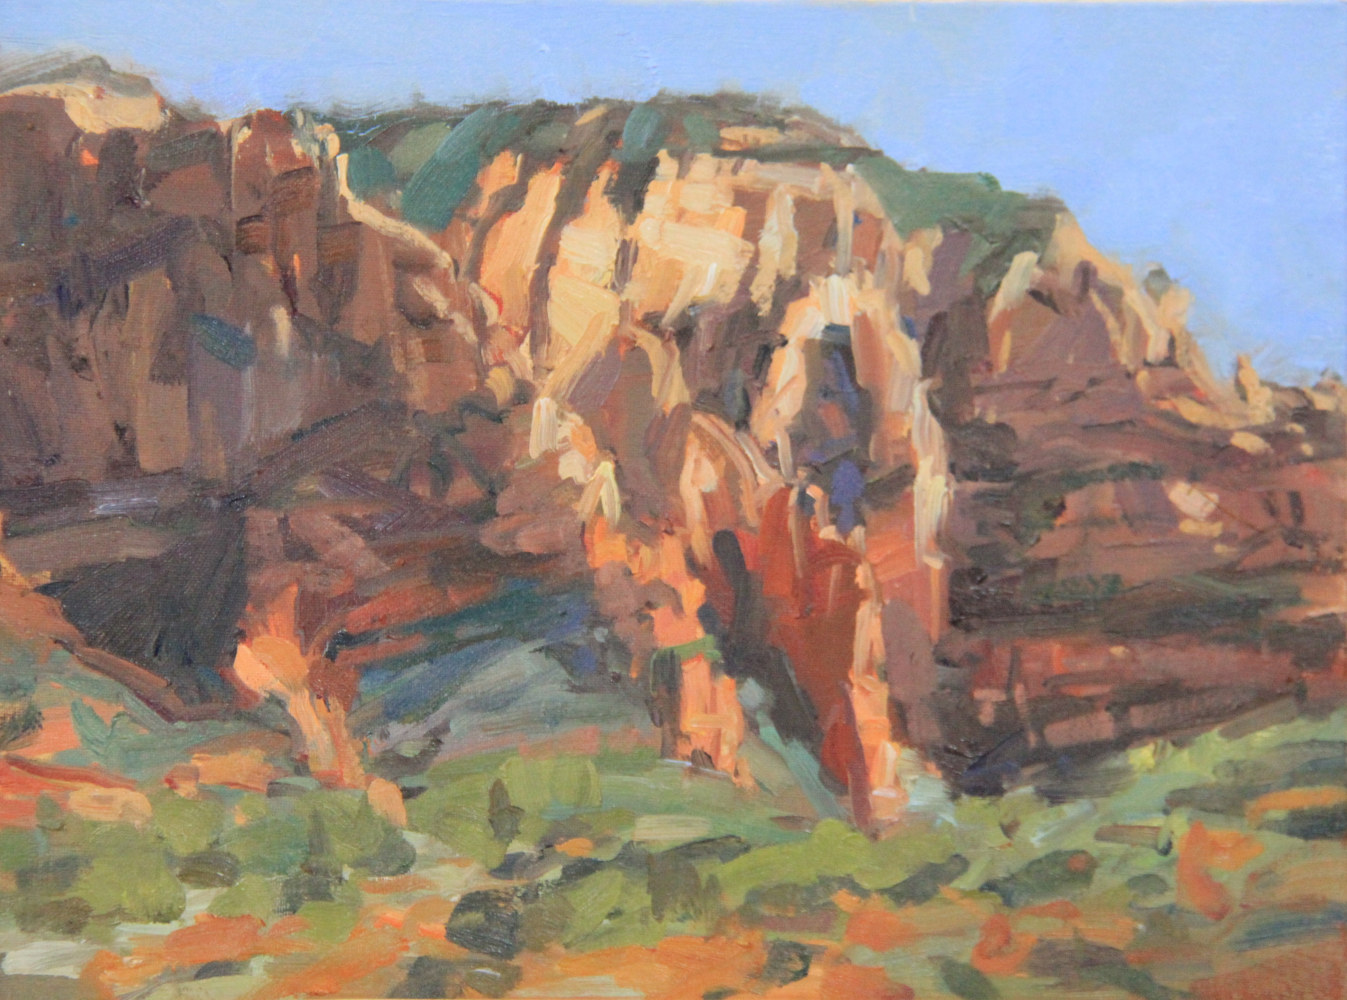 Painting Sedona Plein air II by Susette Gertsch